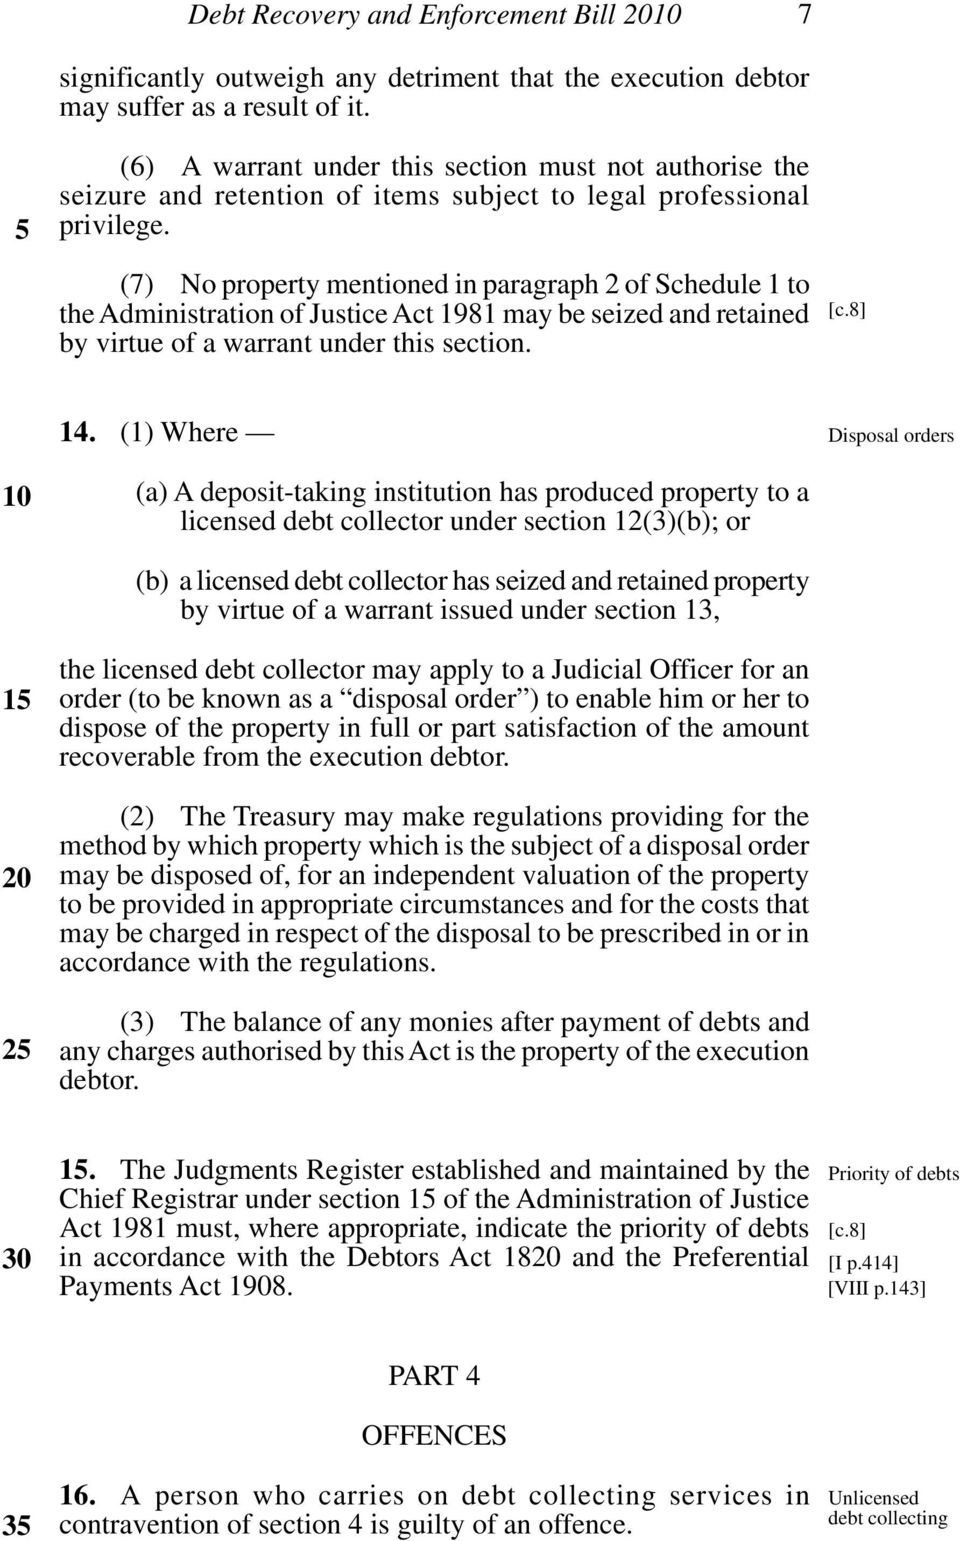 (7) No property mentioned in paragraph 2 of Schedule 1 to the Administration of Justice Act 1981 may be seized and retained by virtue of a warrant under this section. [c.8] 1 2 14.